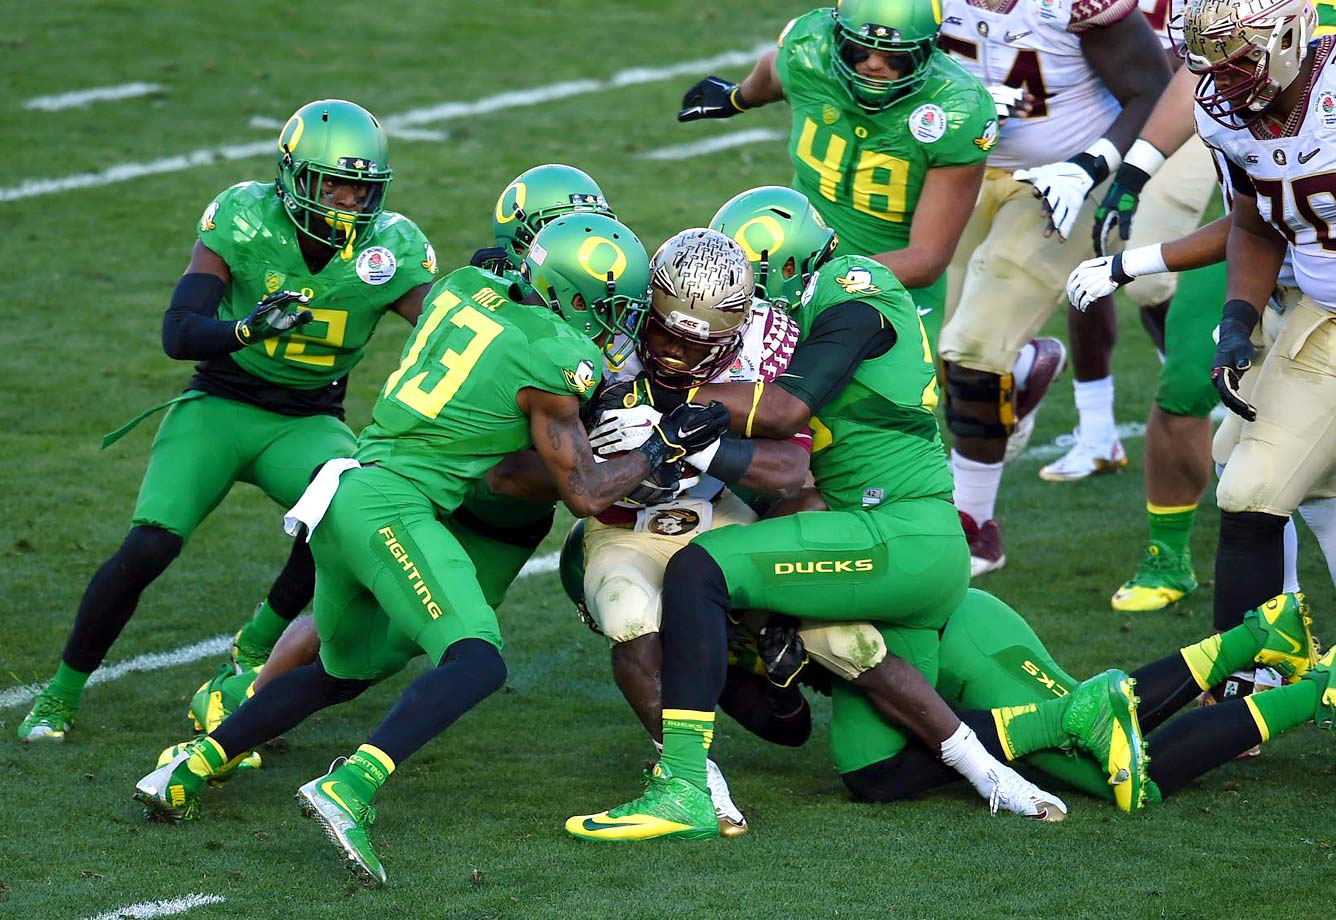 Dalvin Cook rushed for 103 yards, but the Oregon defense forced Florida State's freshman running back to fumble twice.